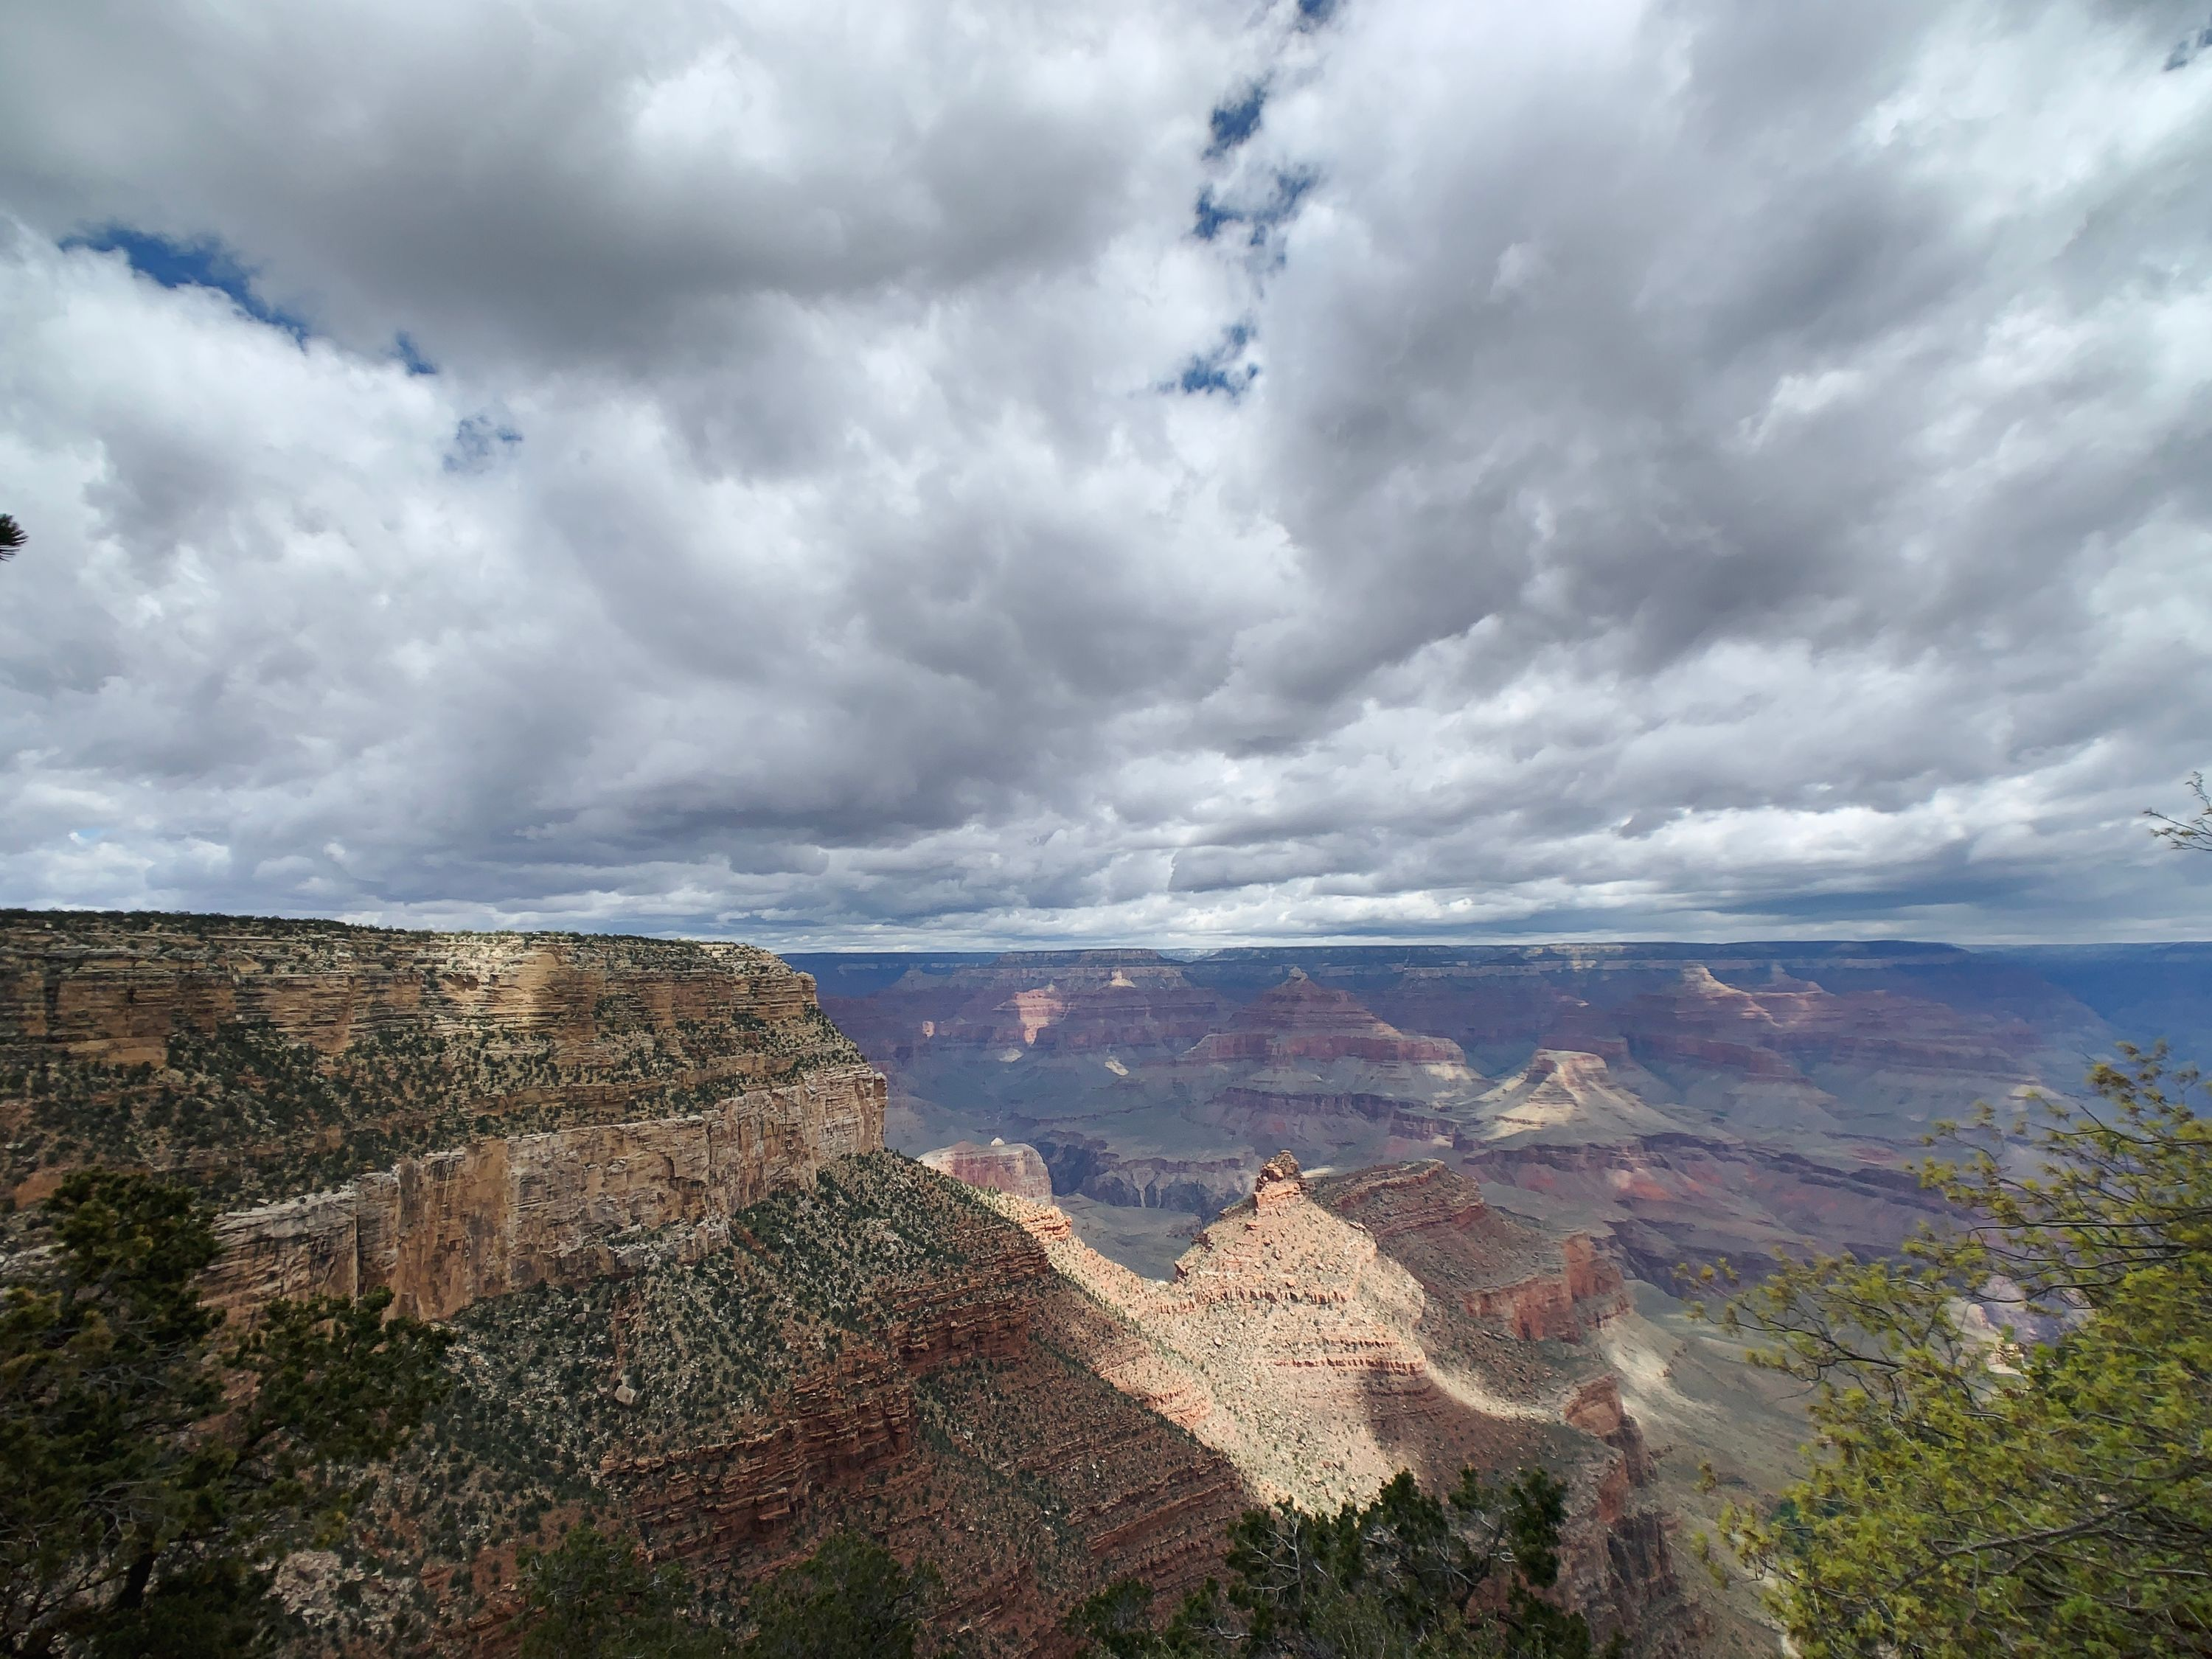 A View from the South Rim of the Grand Canyon